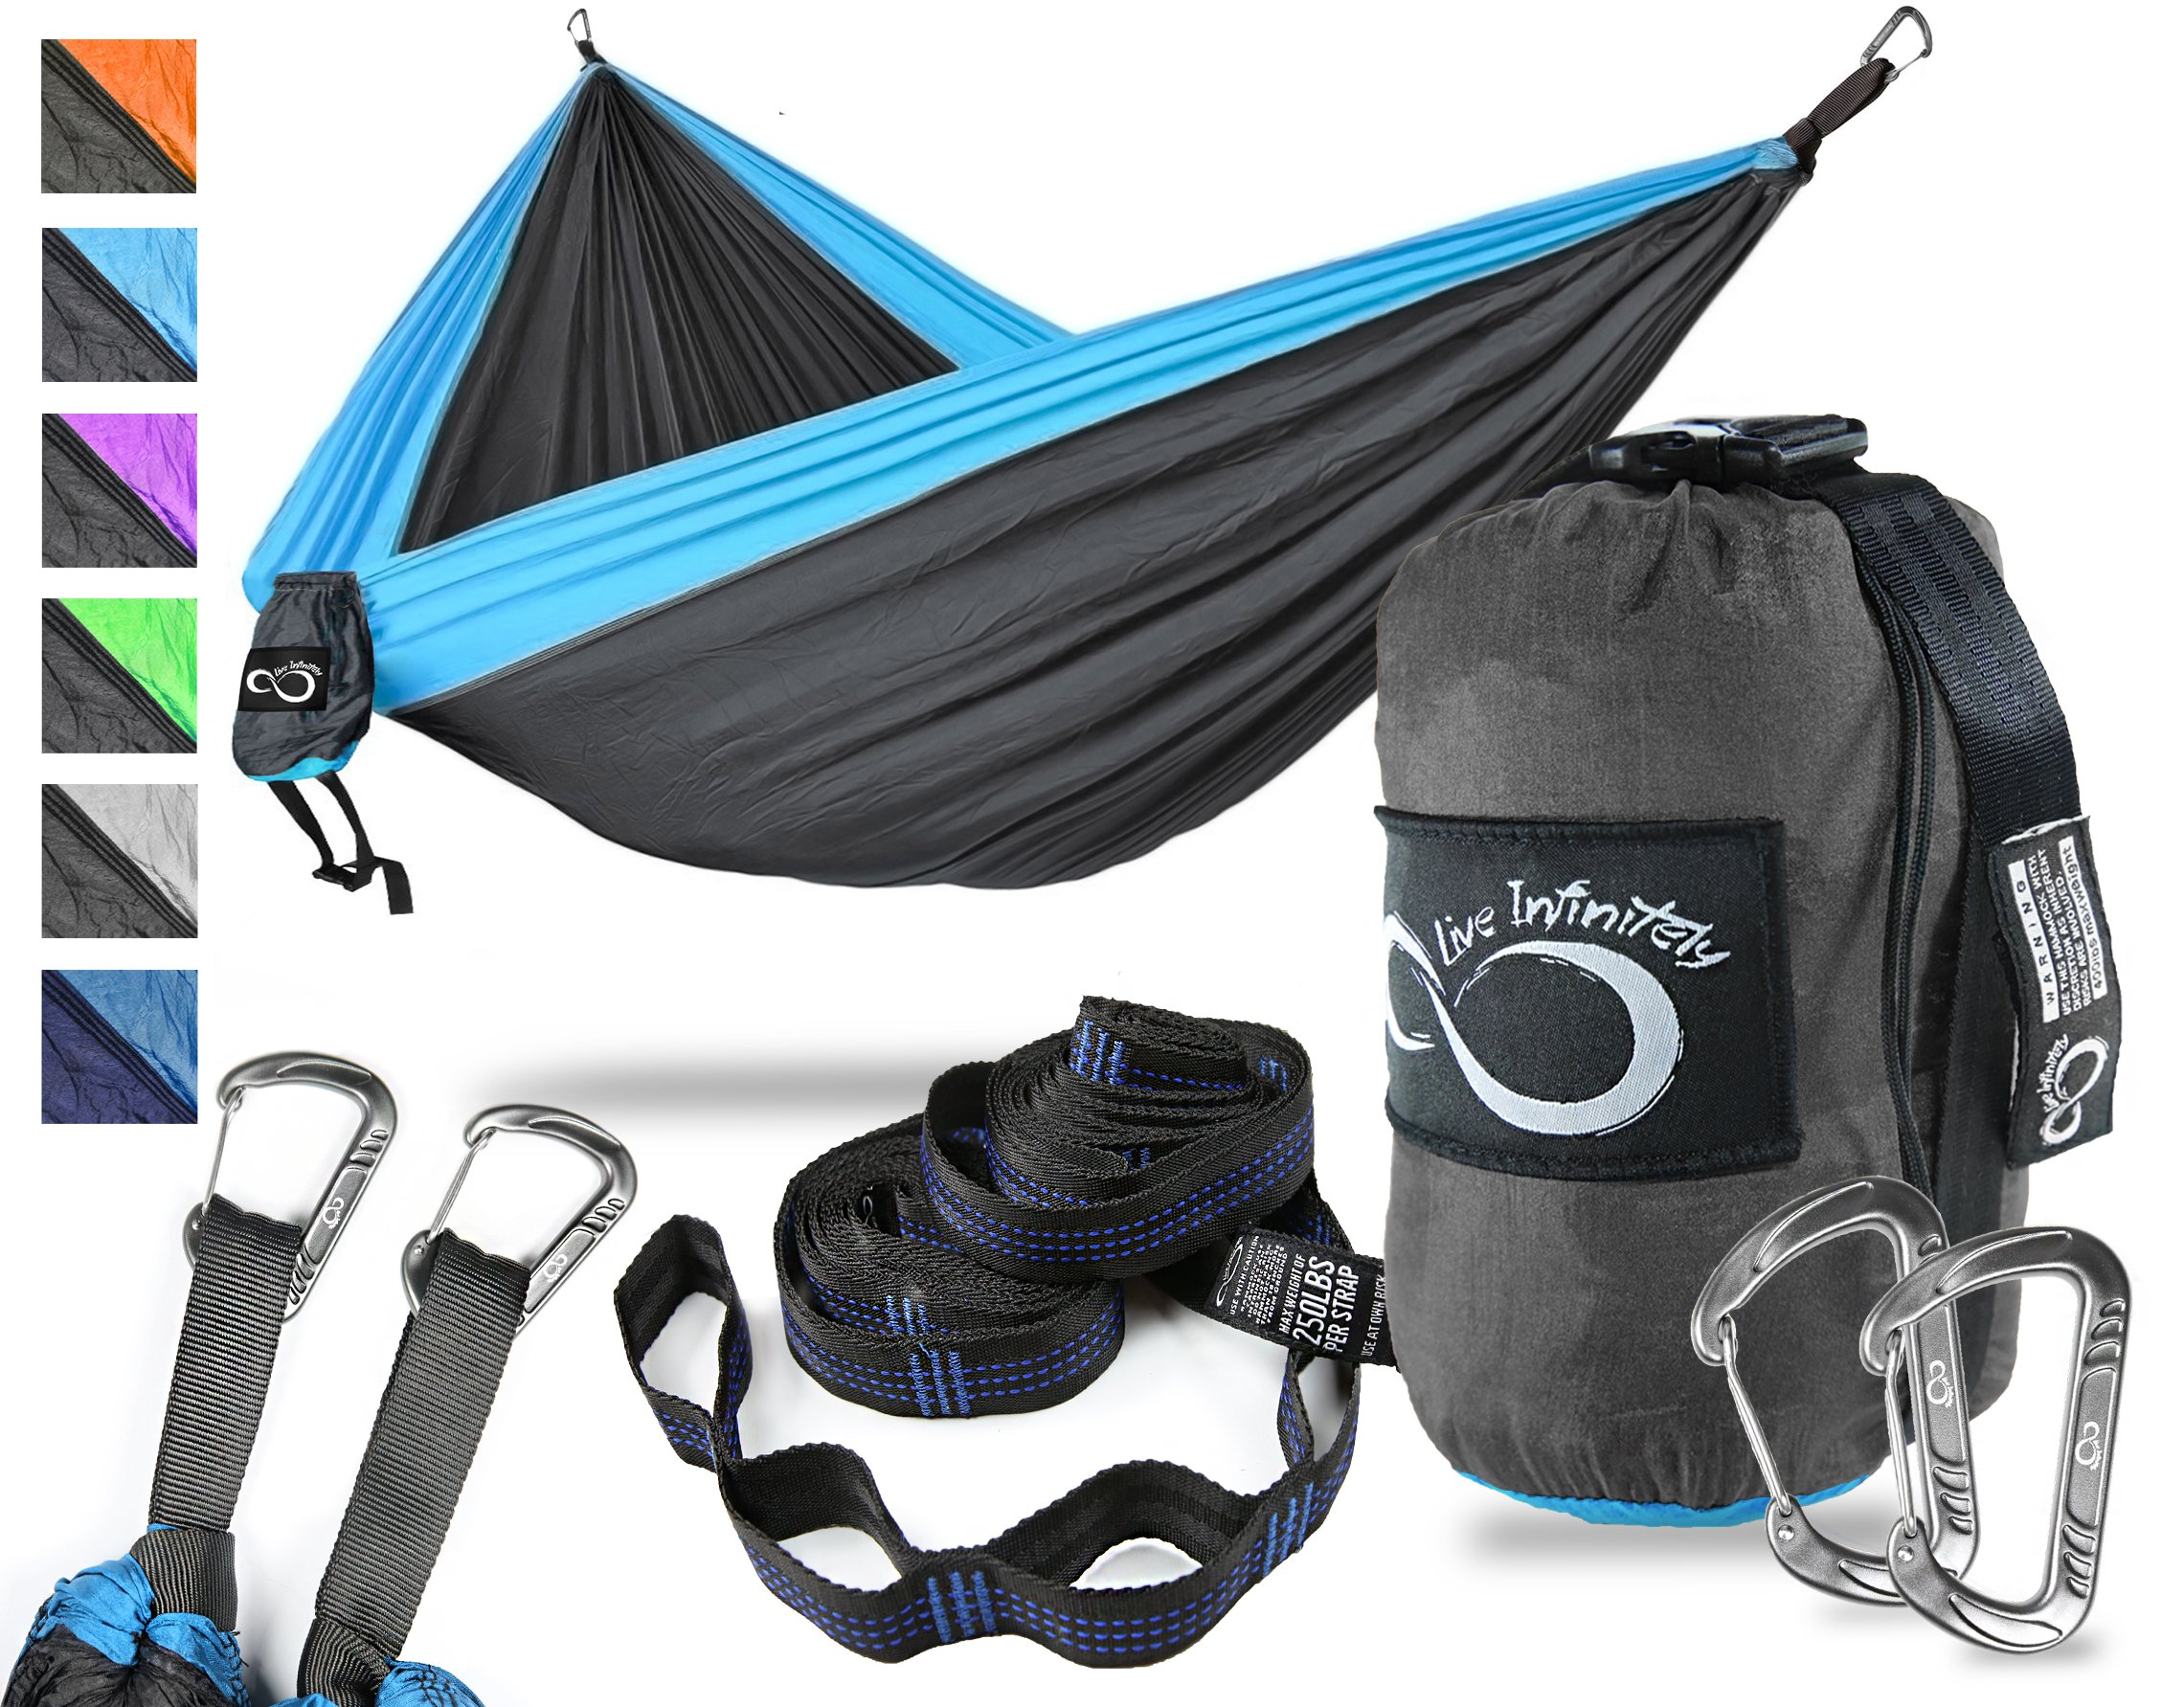 strong ripstop up done hold and review will to is although pounds guide it still the as model camping that hammock mosquito best freehawk job nylon hiking holds lbs can not parachute this get